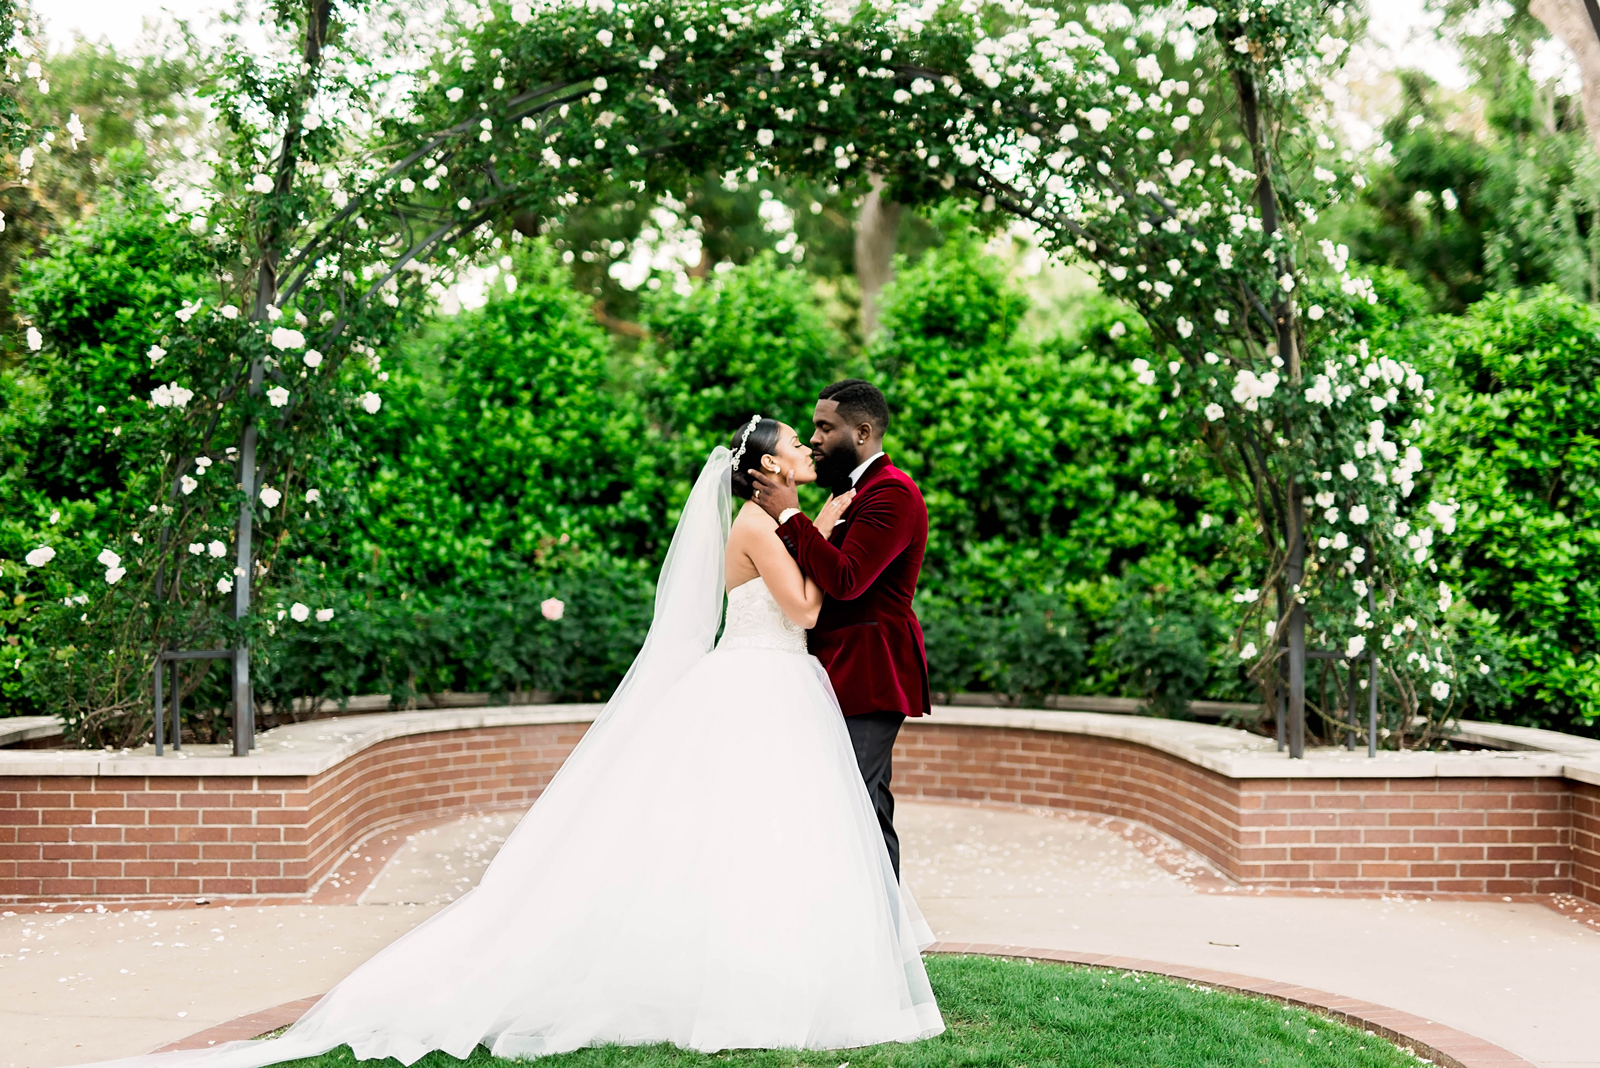 bride and groom kiss outside under greenery arch